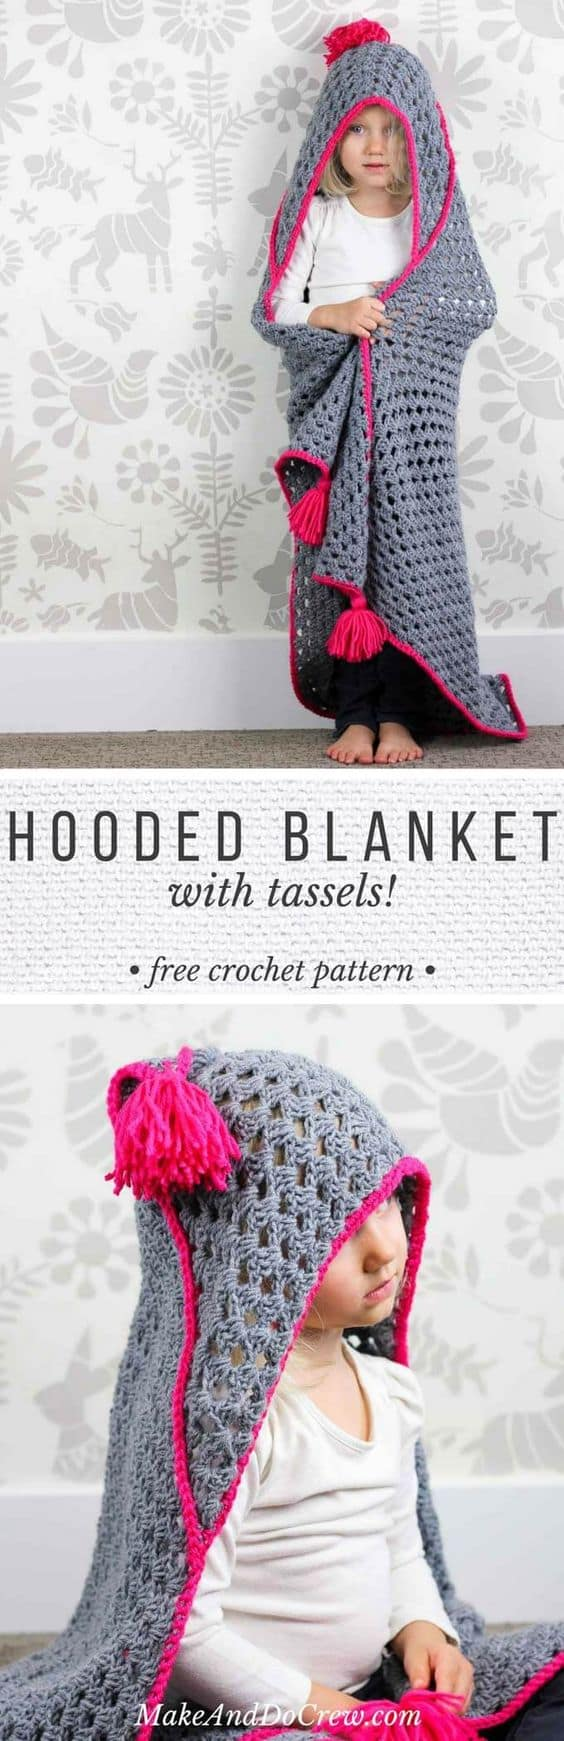 Crochet Hooded Blanket Pattern Pinterest Top Pins